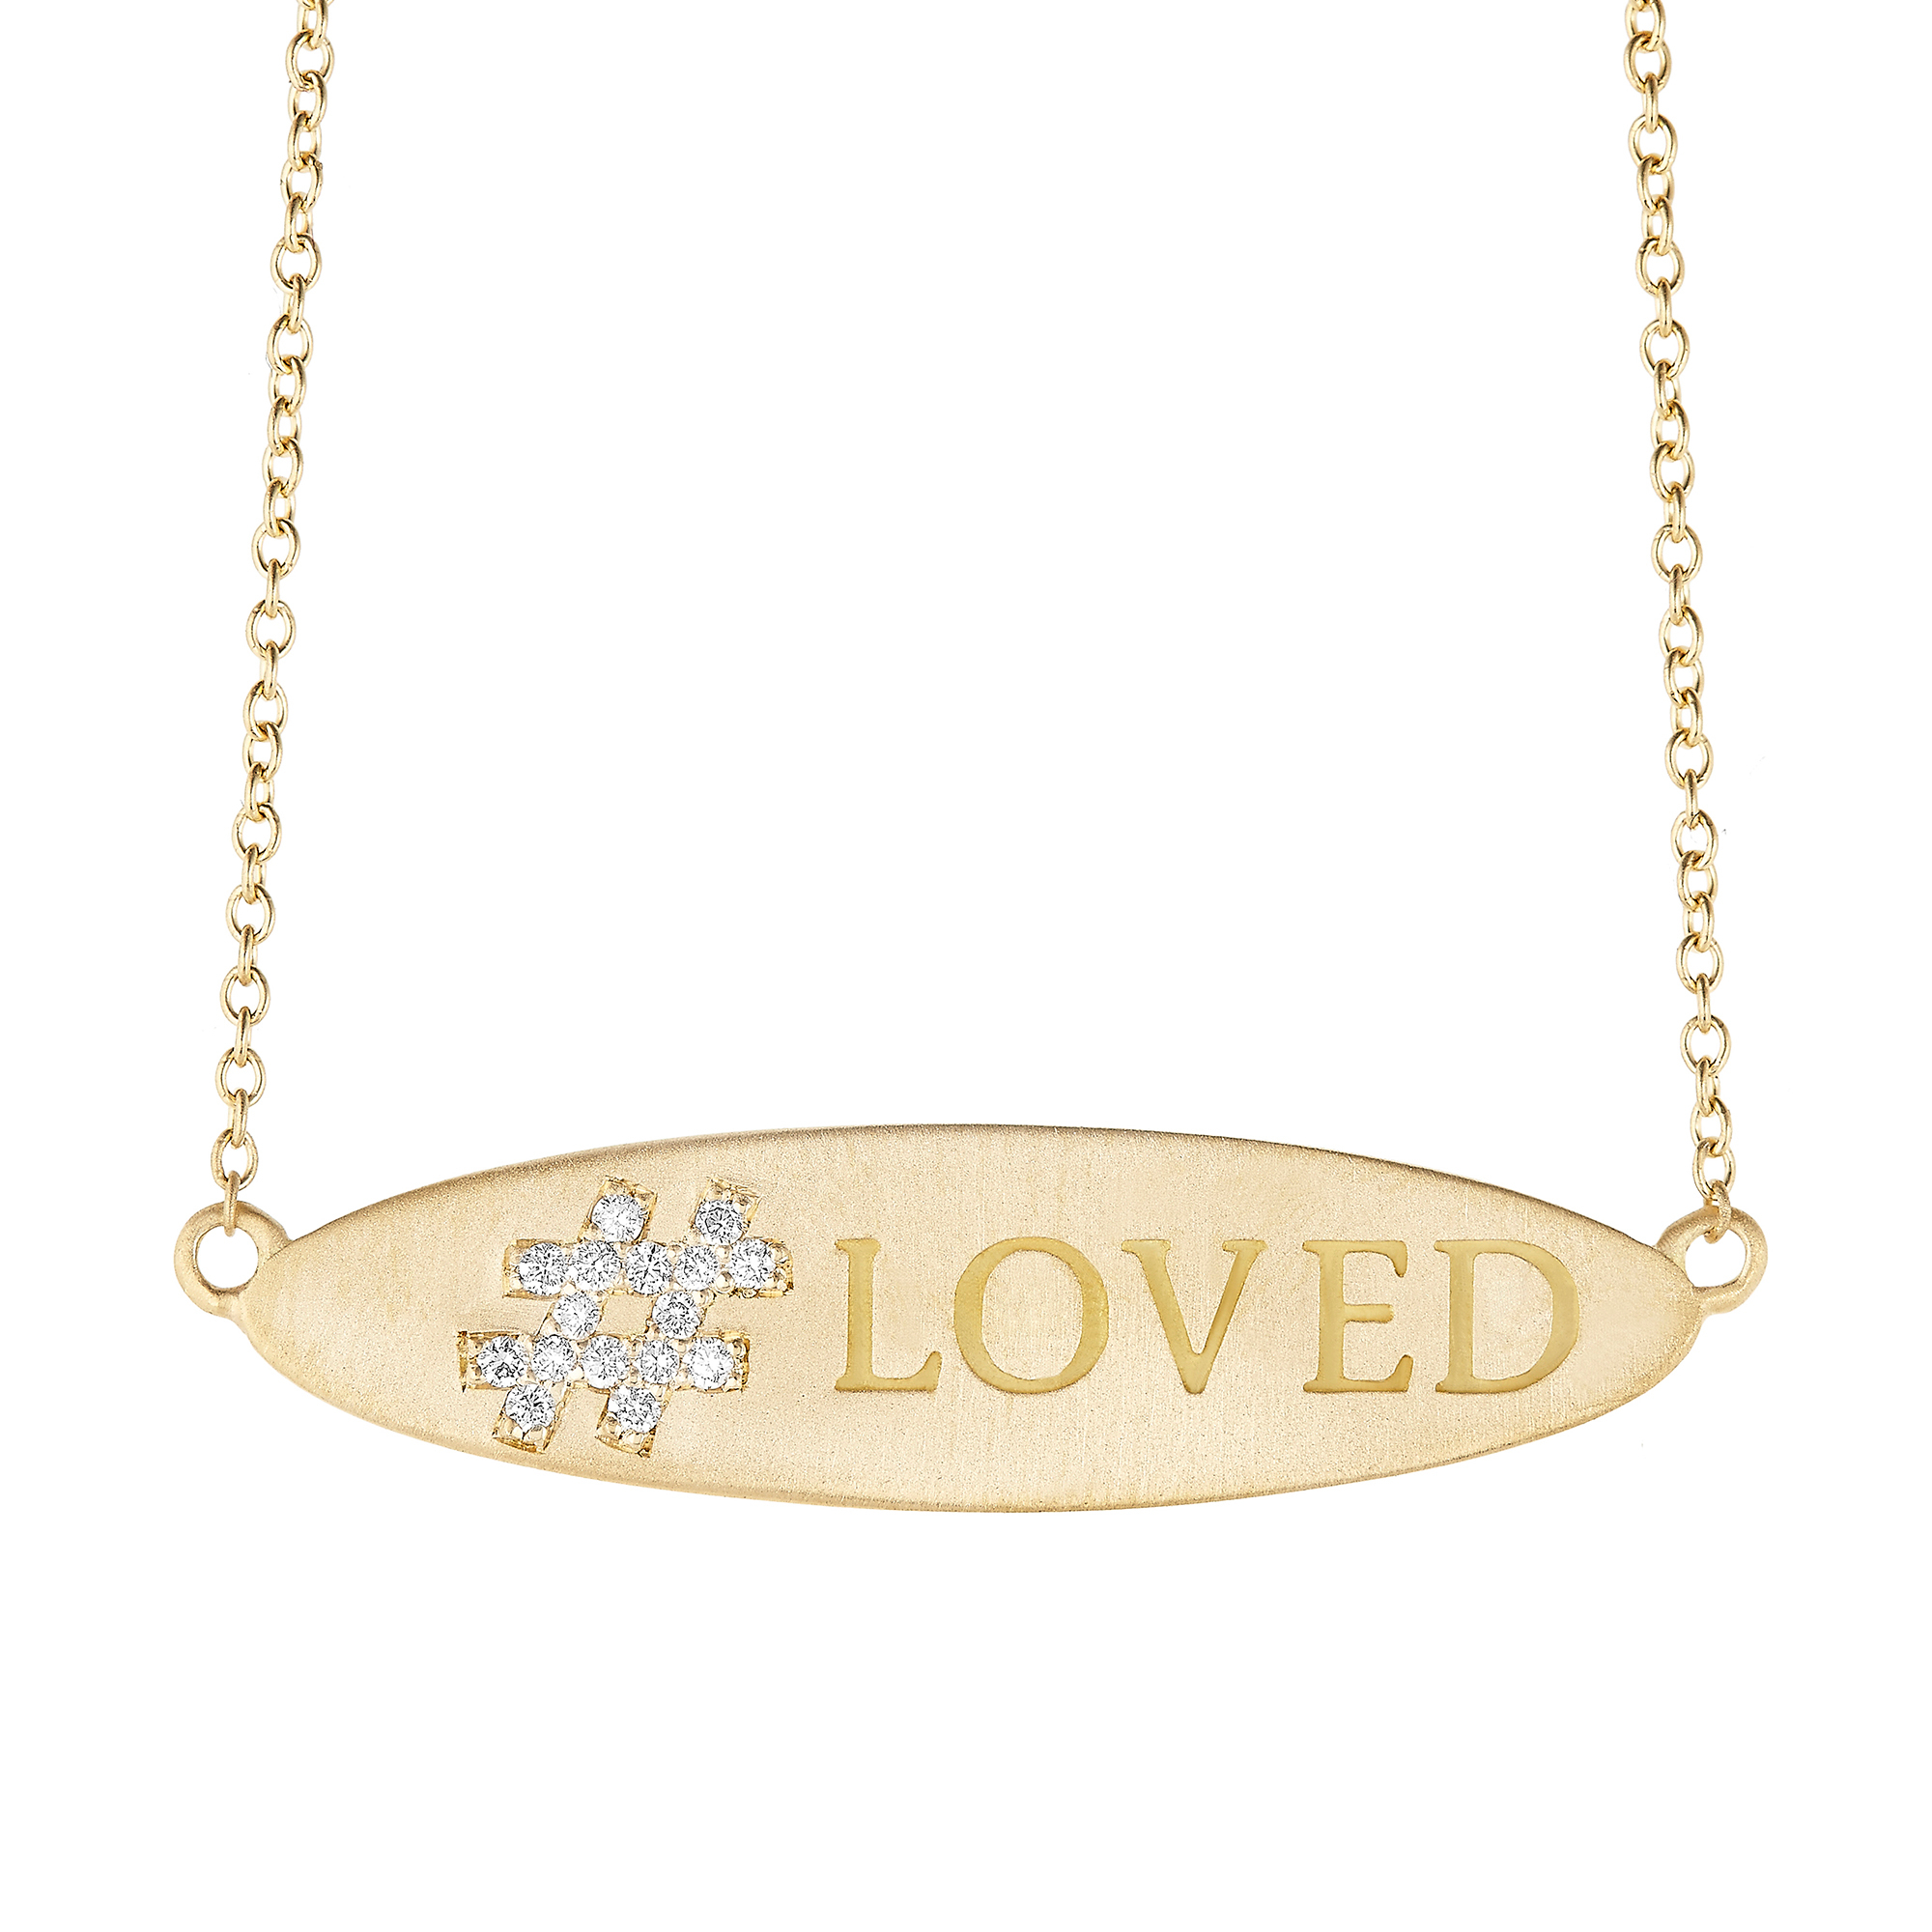 Carelle Diamond Hashtag Loved Necklace